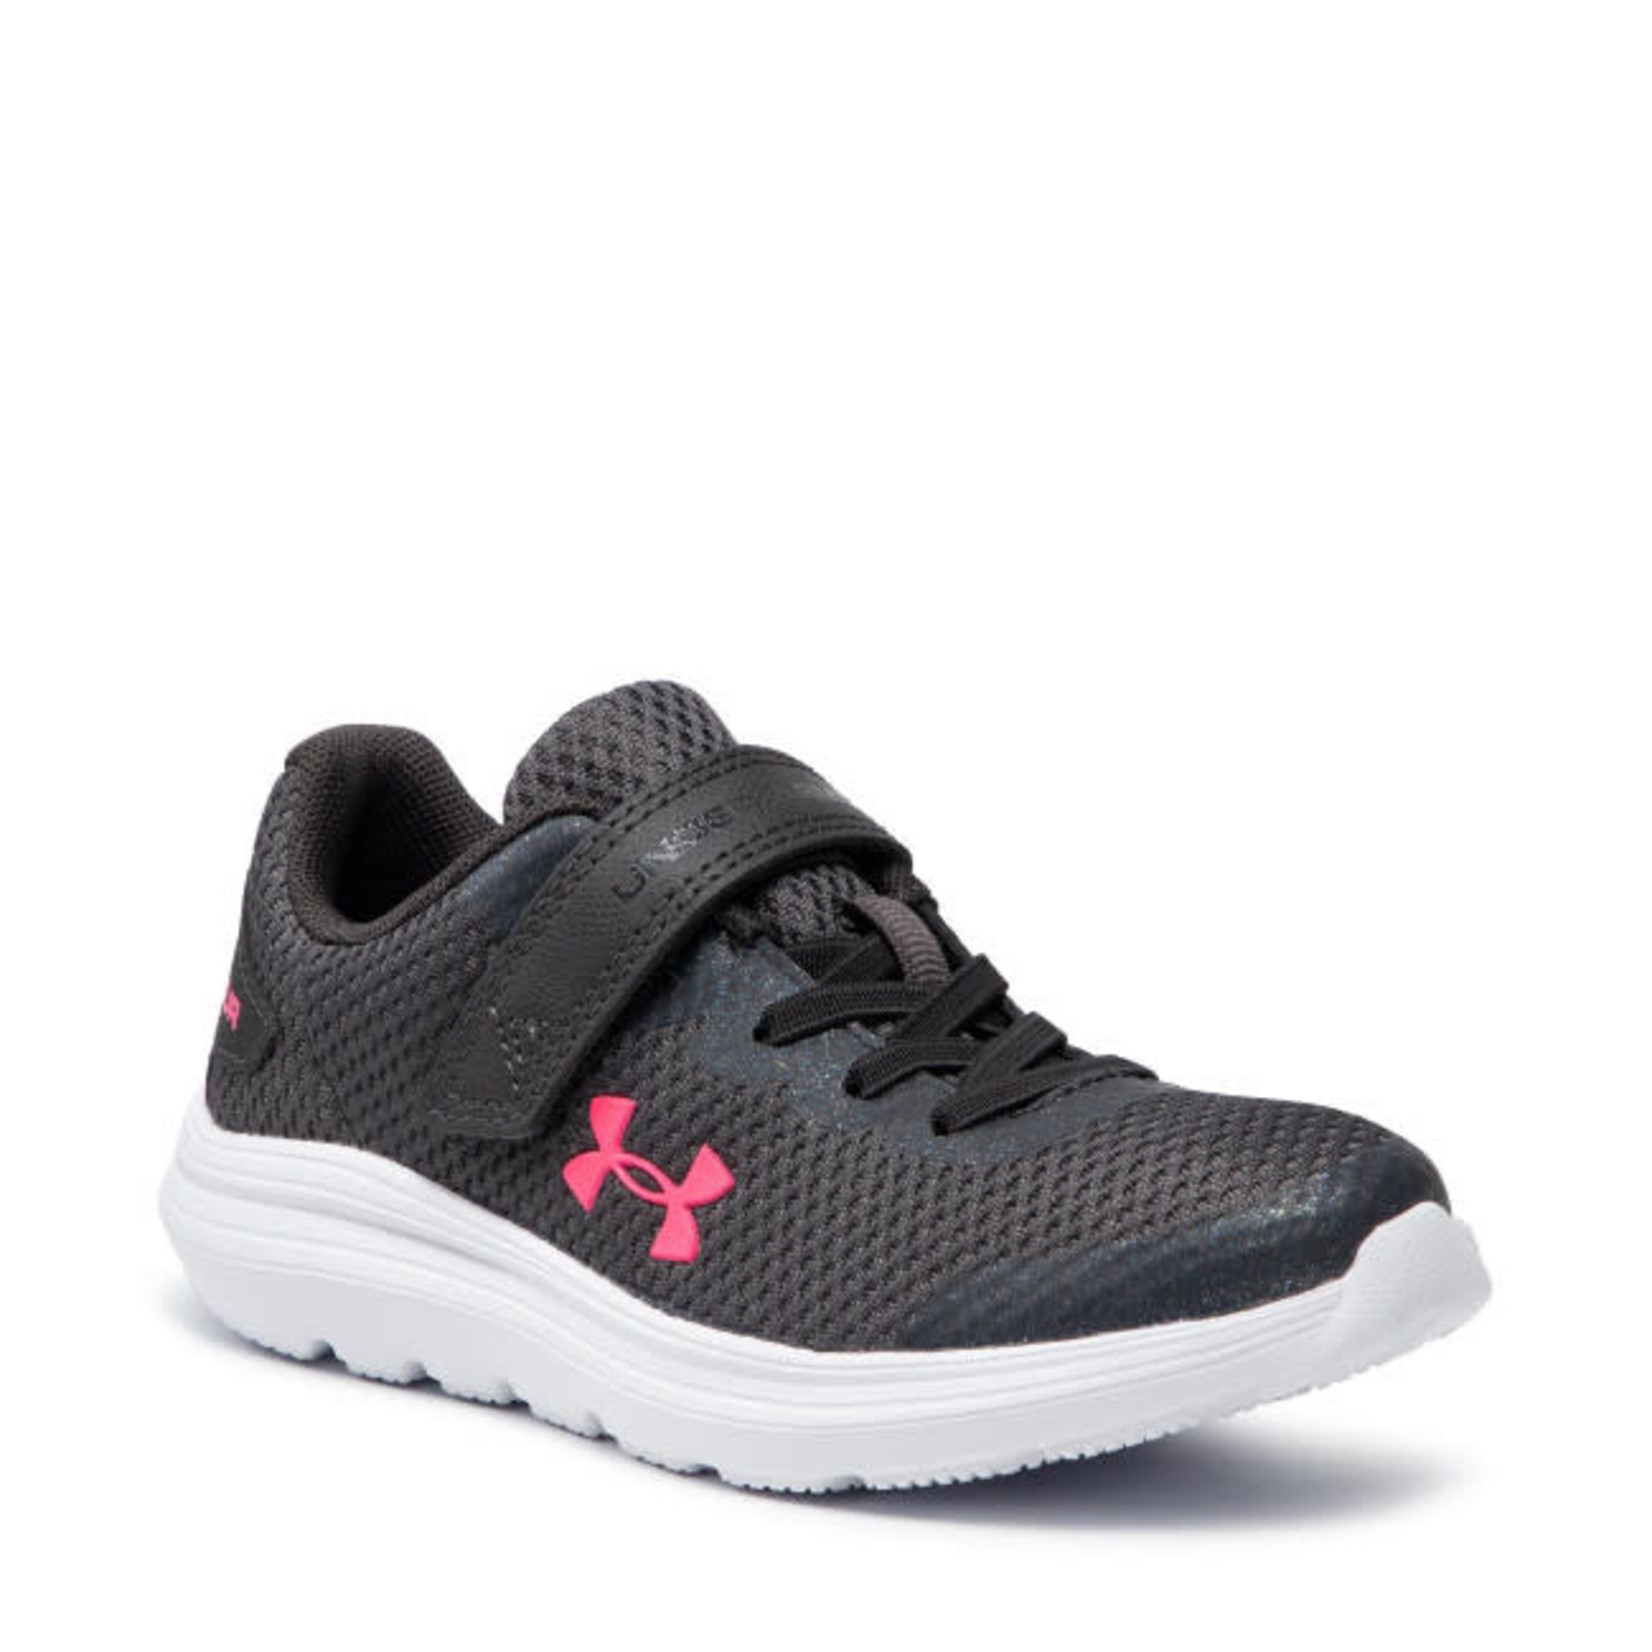 Under Armour Under Armour Running Shoes, Surge 2 AC, GPS, Girls